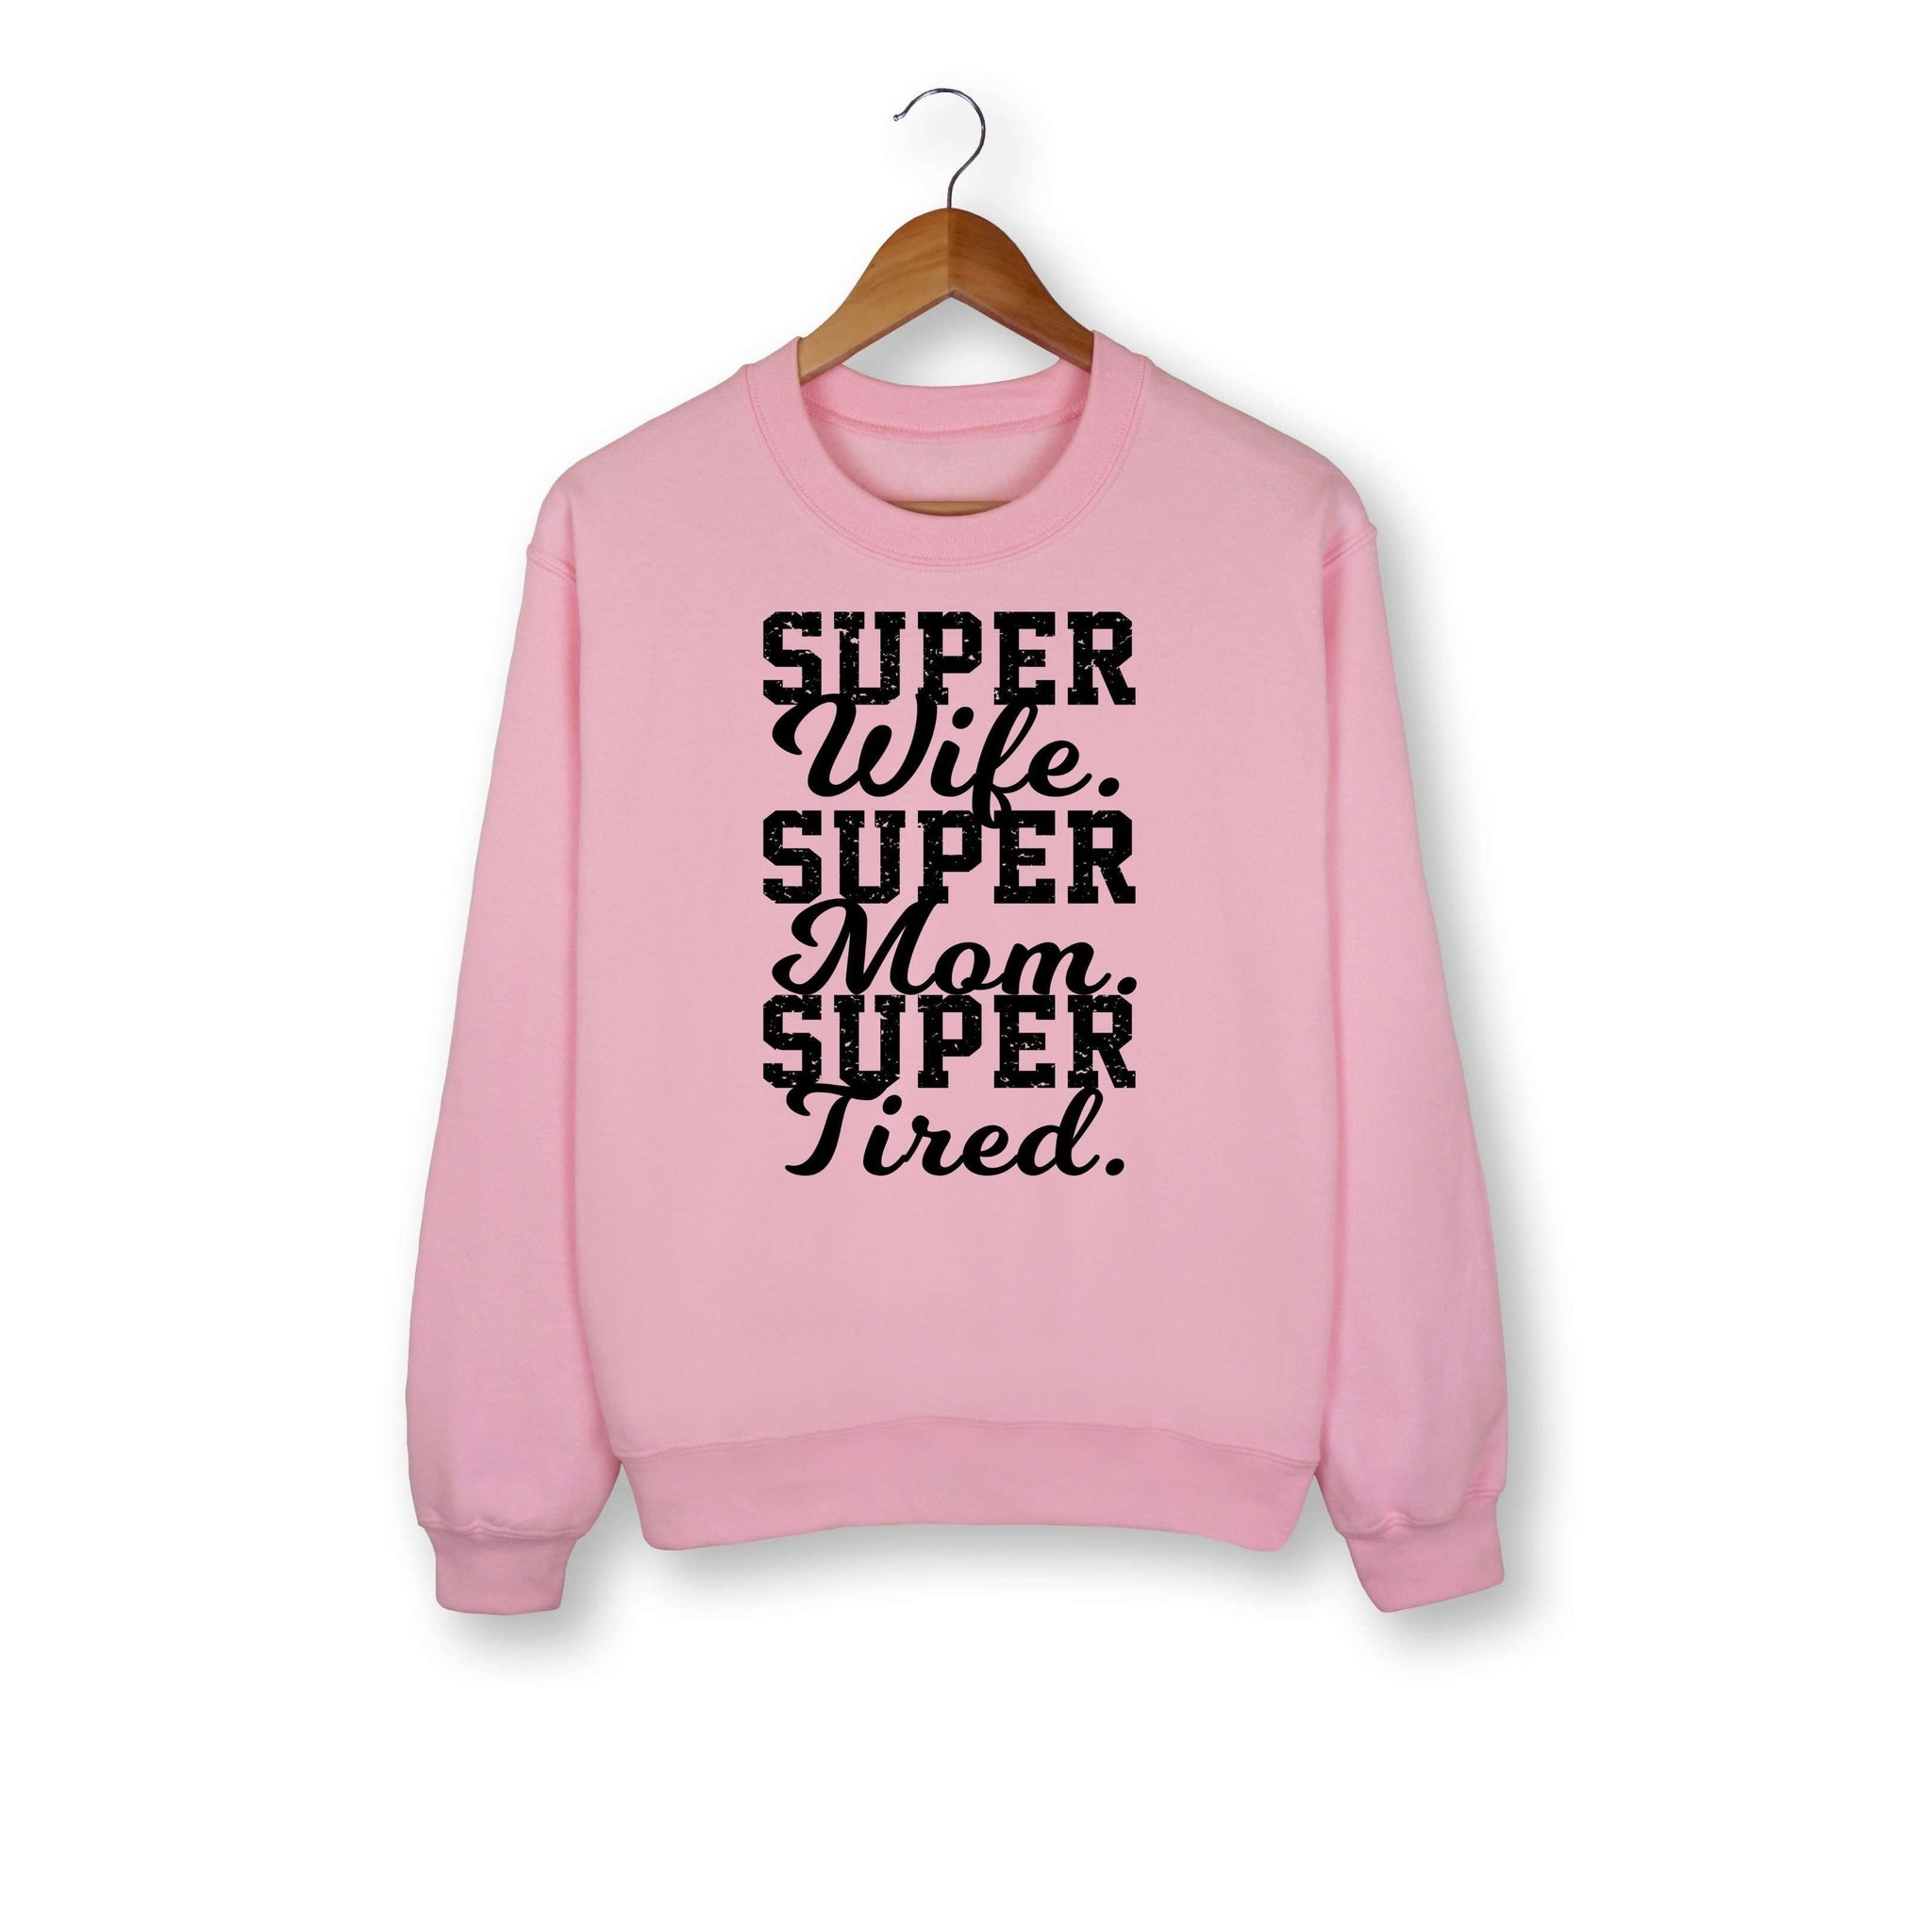 Super Wife Super Mom Super Tired Sweatshirt